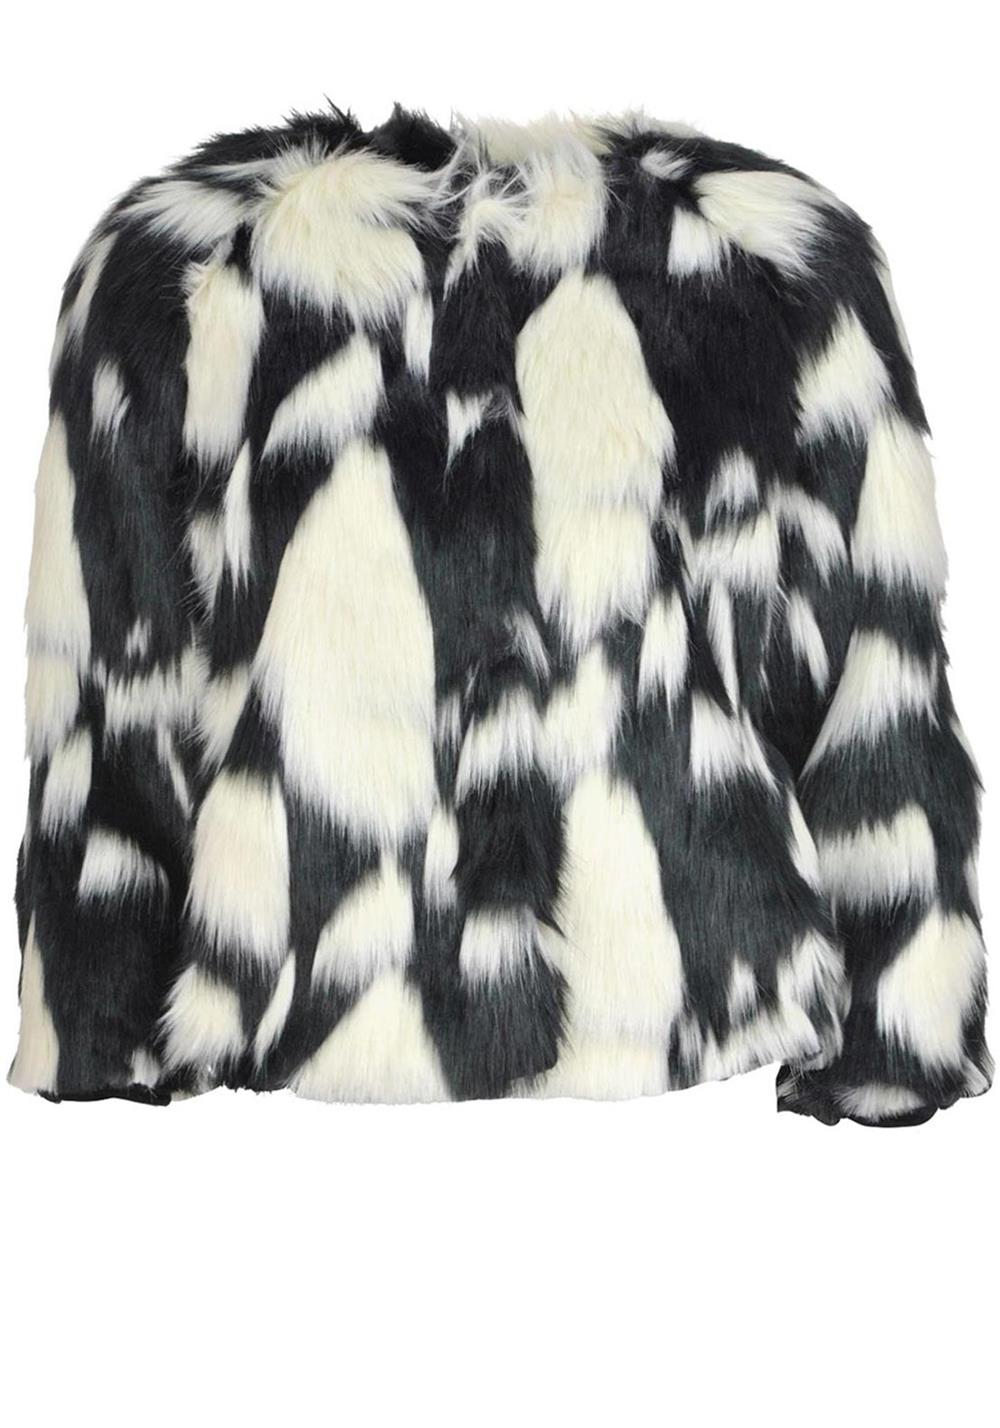 Christina & Co Deccarlo Faux Fur Jacket, Black & White